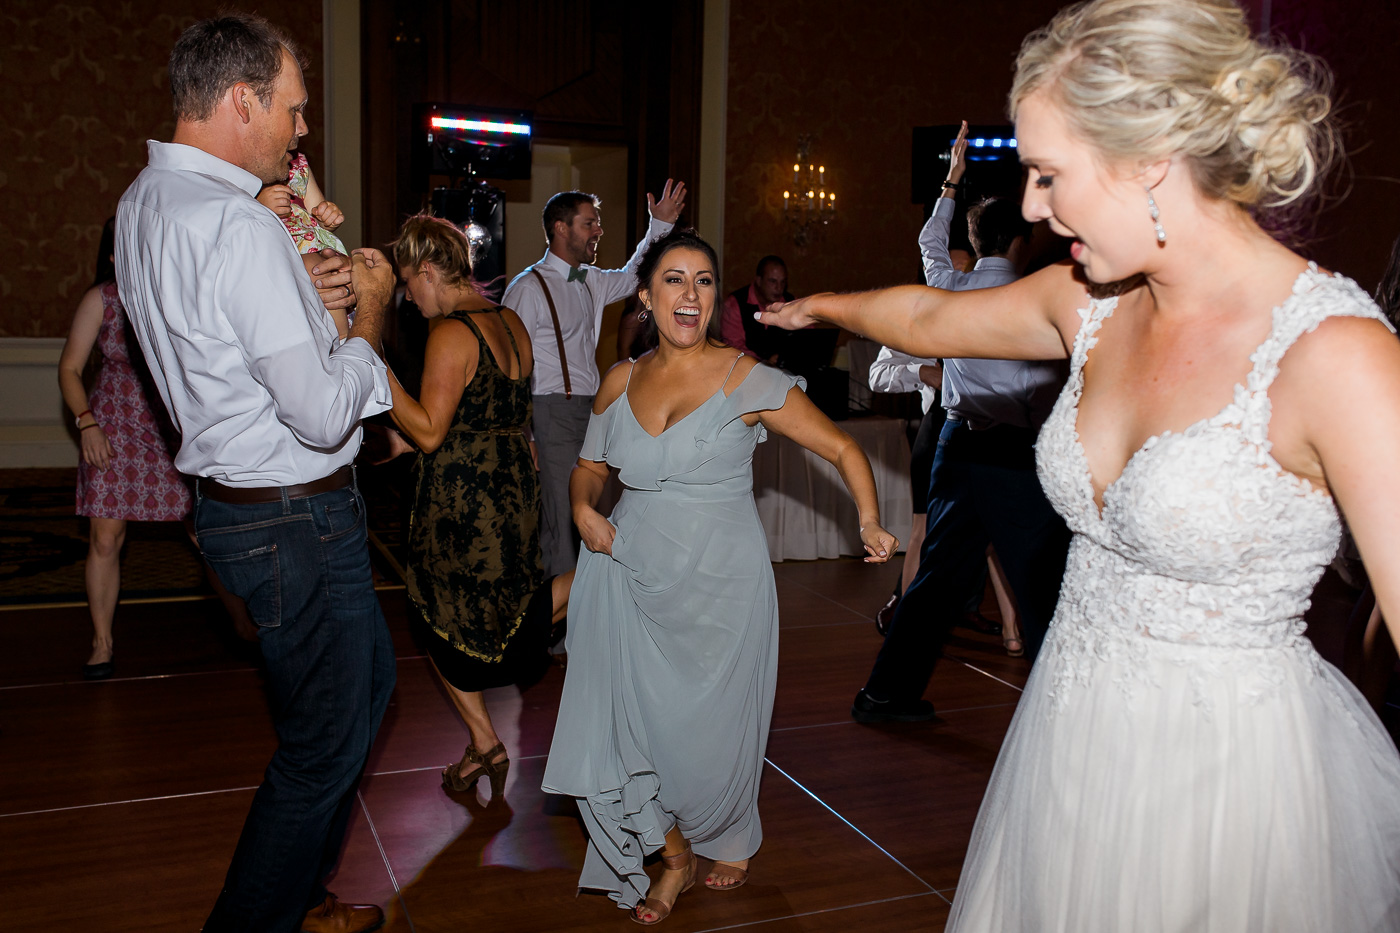 Little America Wedding Reception in Cheyenne By Megan Lee Photography